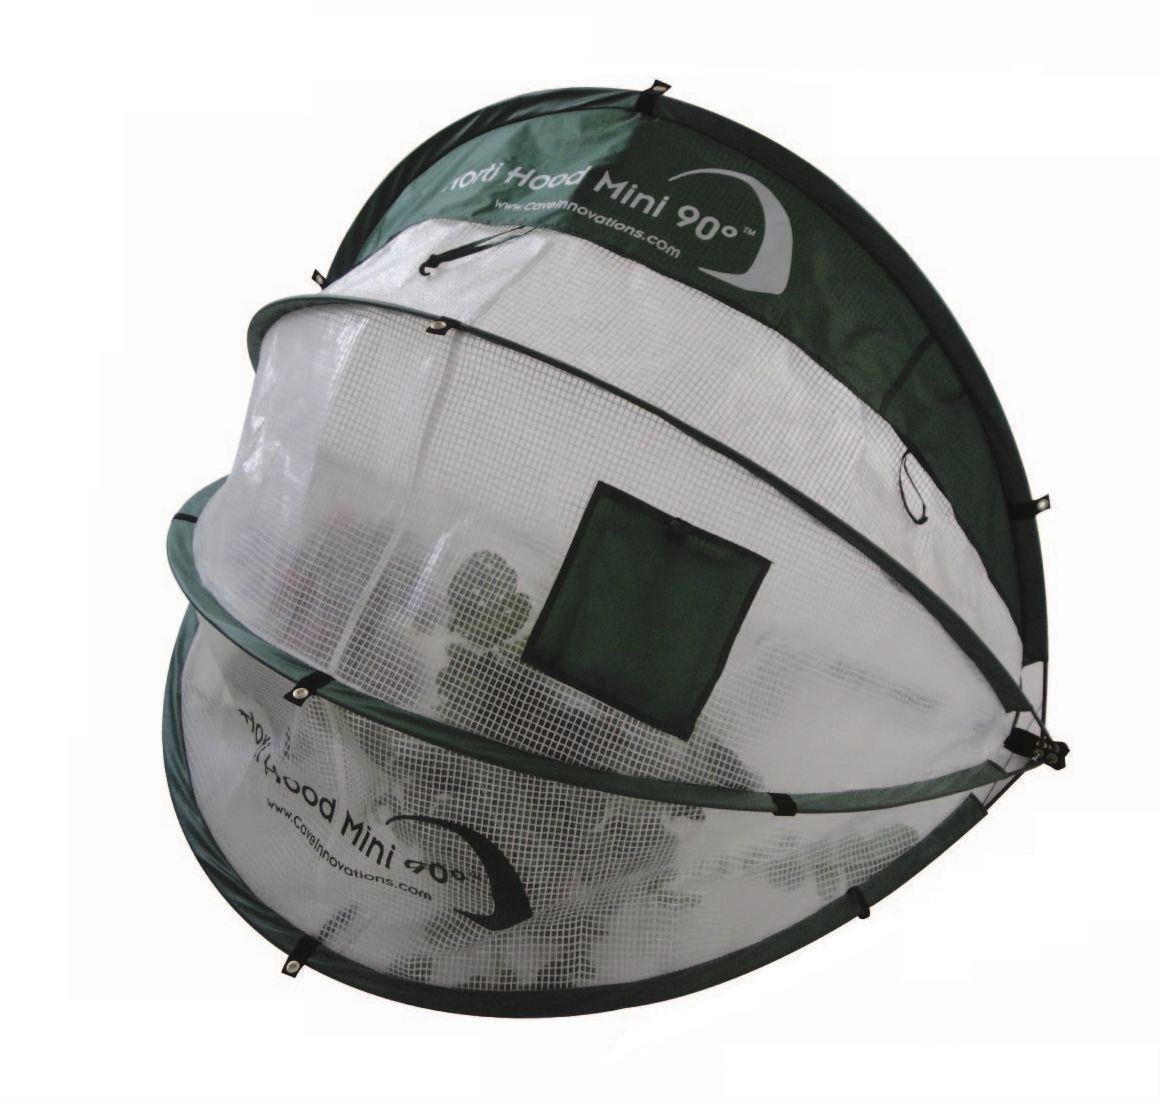 Image of Horti Hood Mini 90° Wall Mounted Folding Cloche.